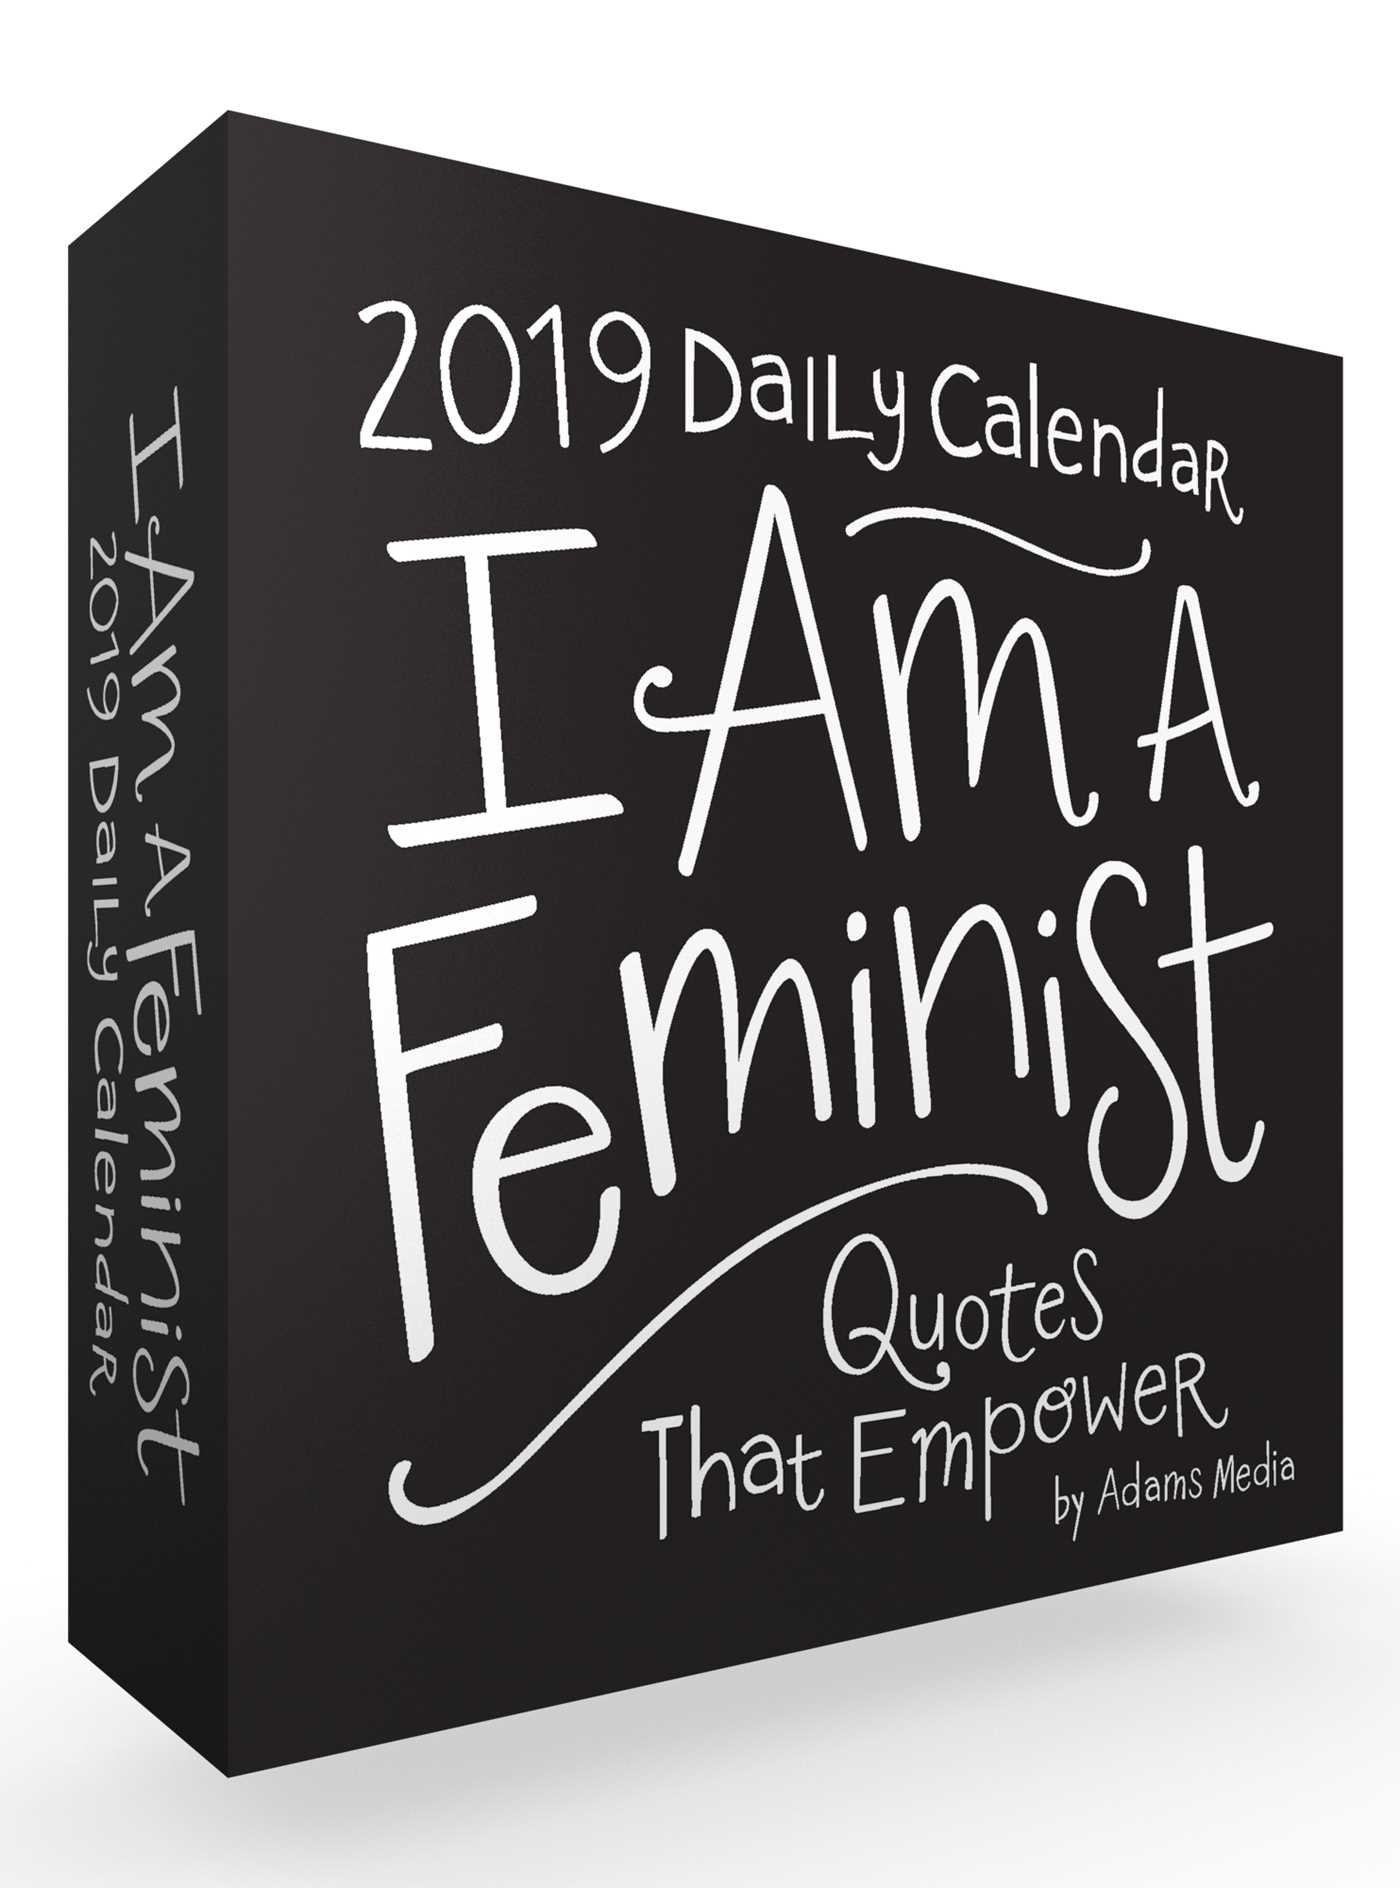 I am a feminist 2019 daily calendar quotes that empower adams media 9781507207765 amazon com books